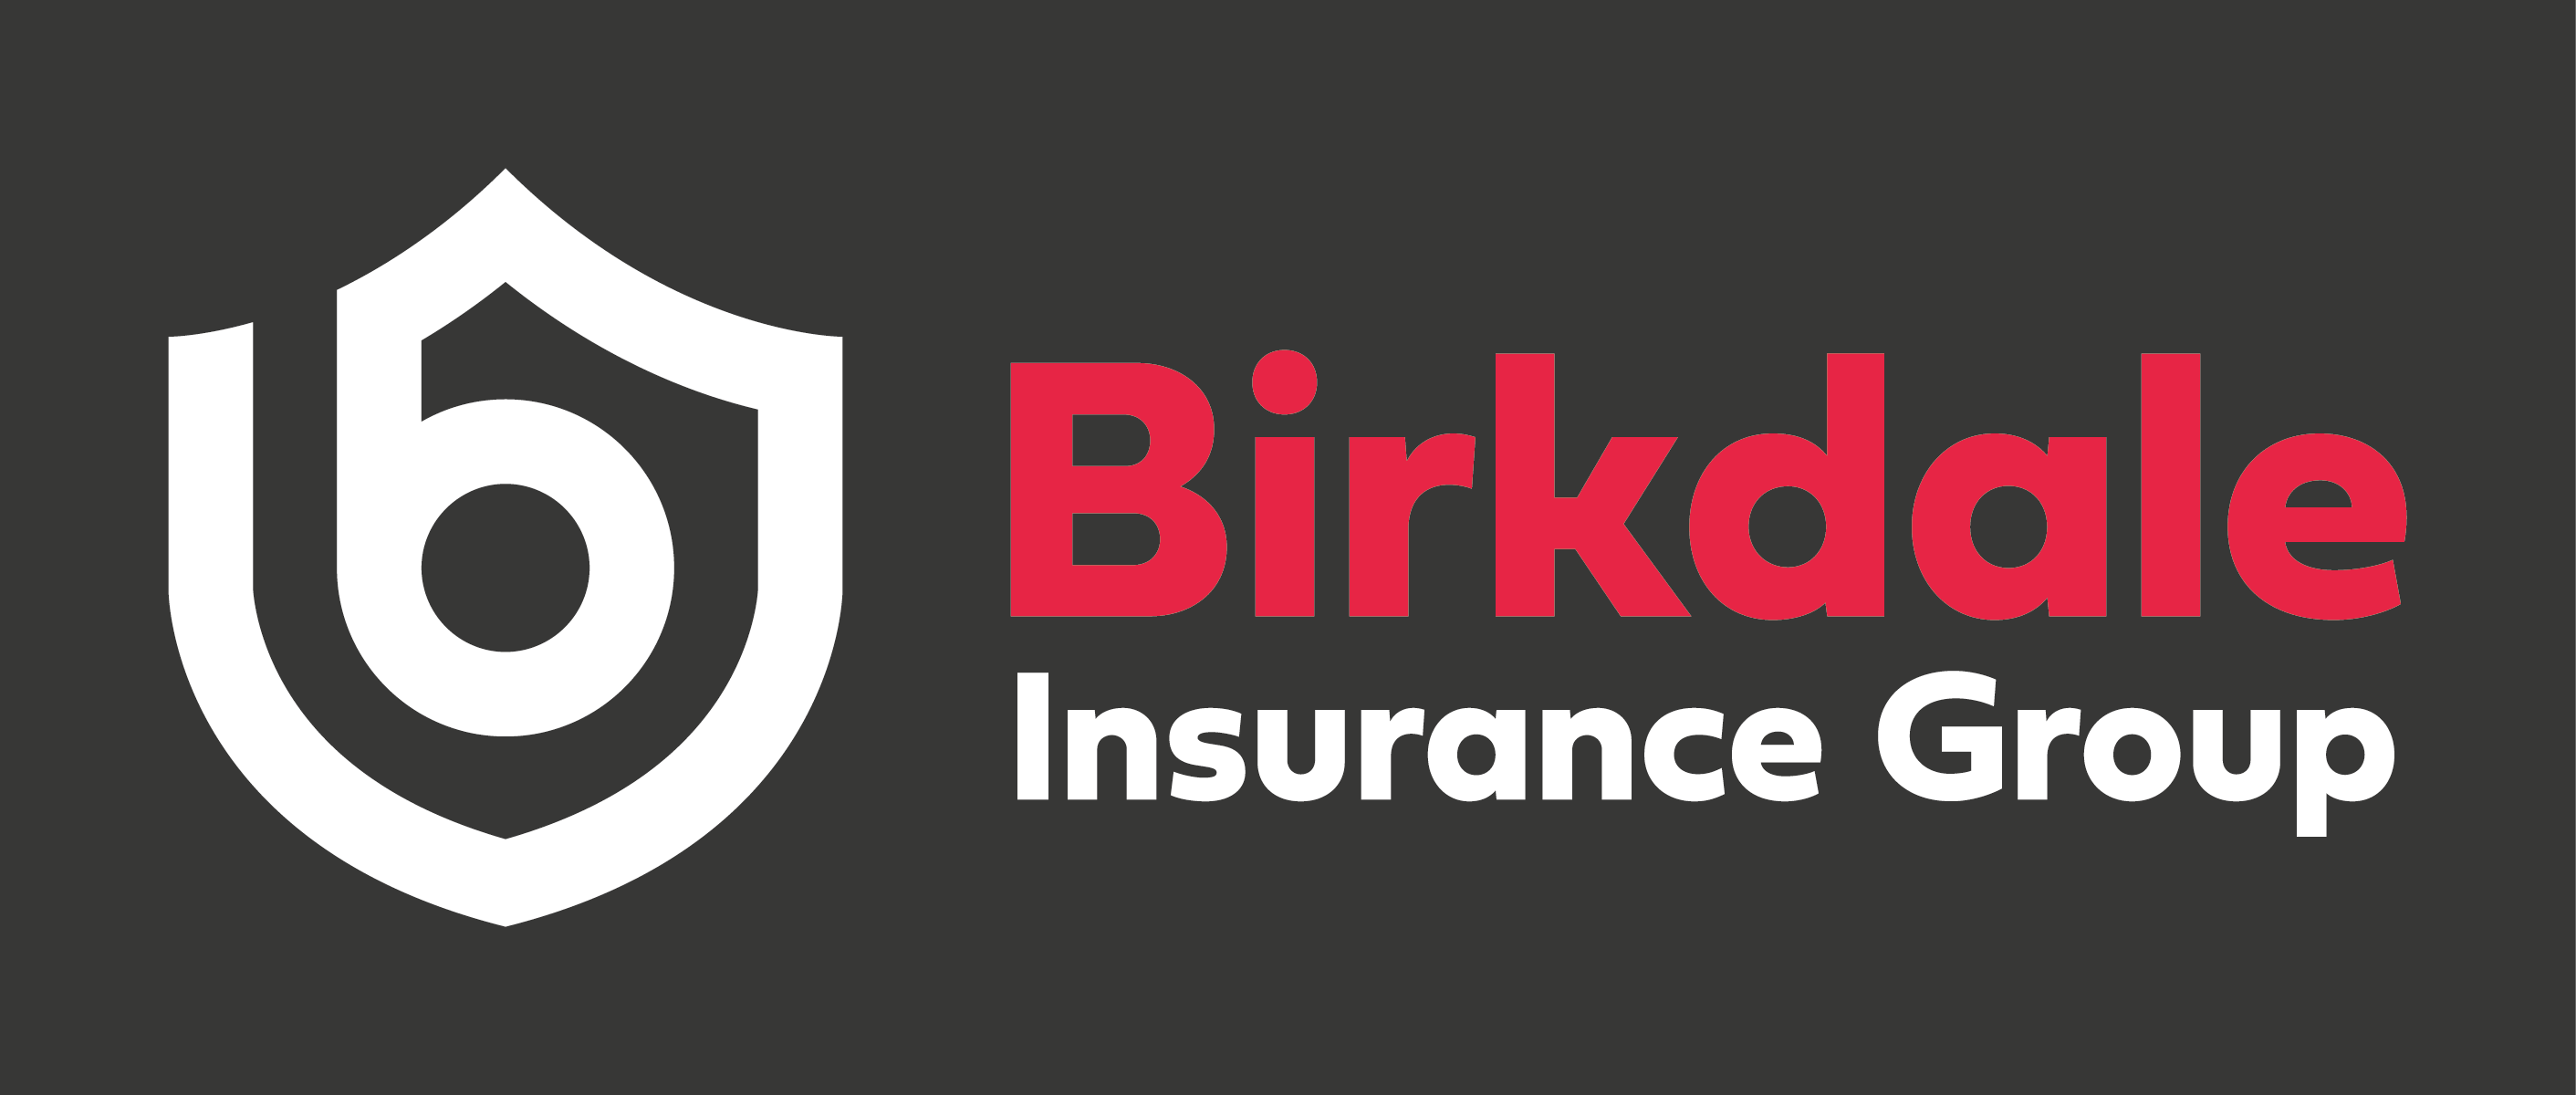 Birkdale Insurance Group